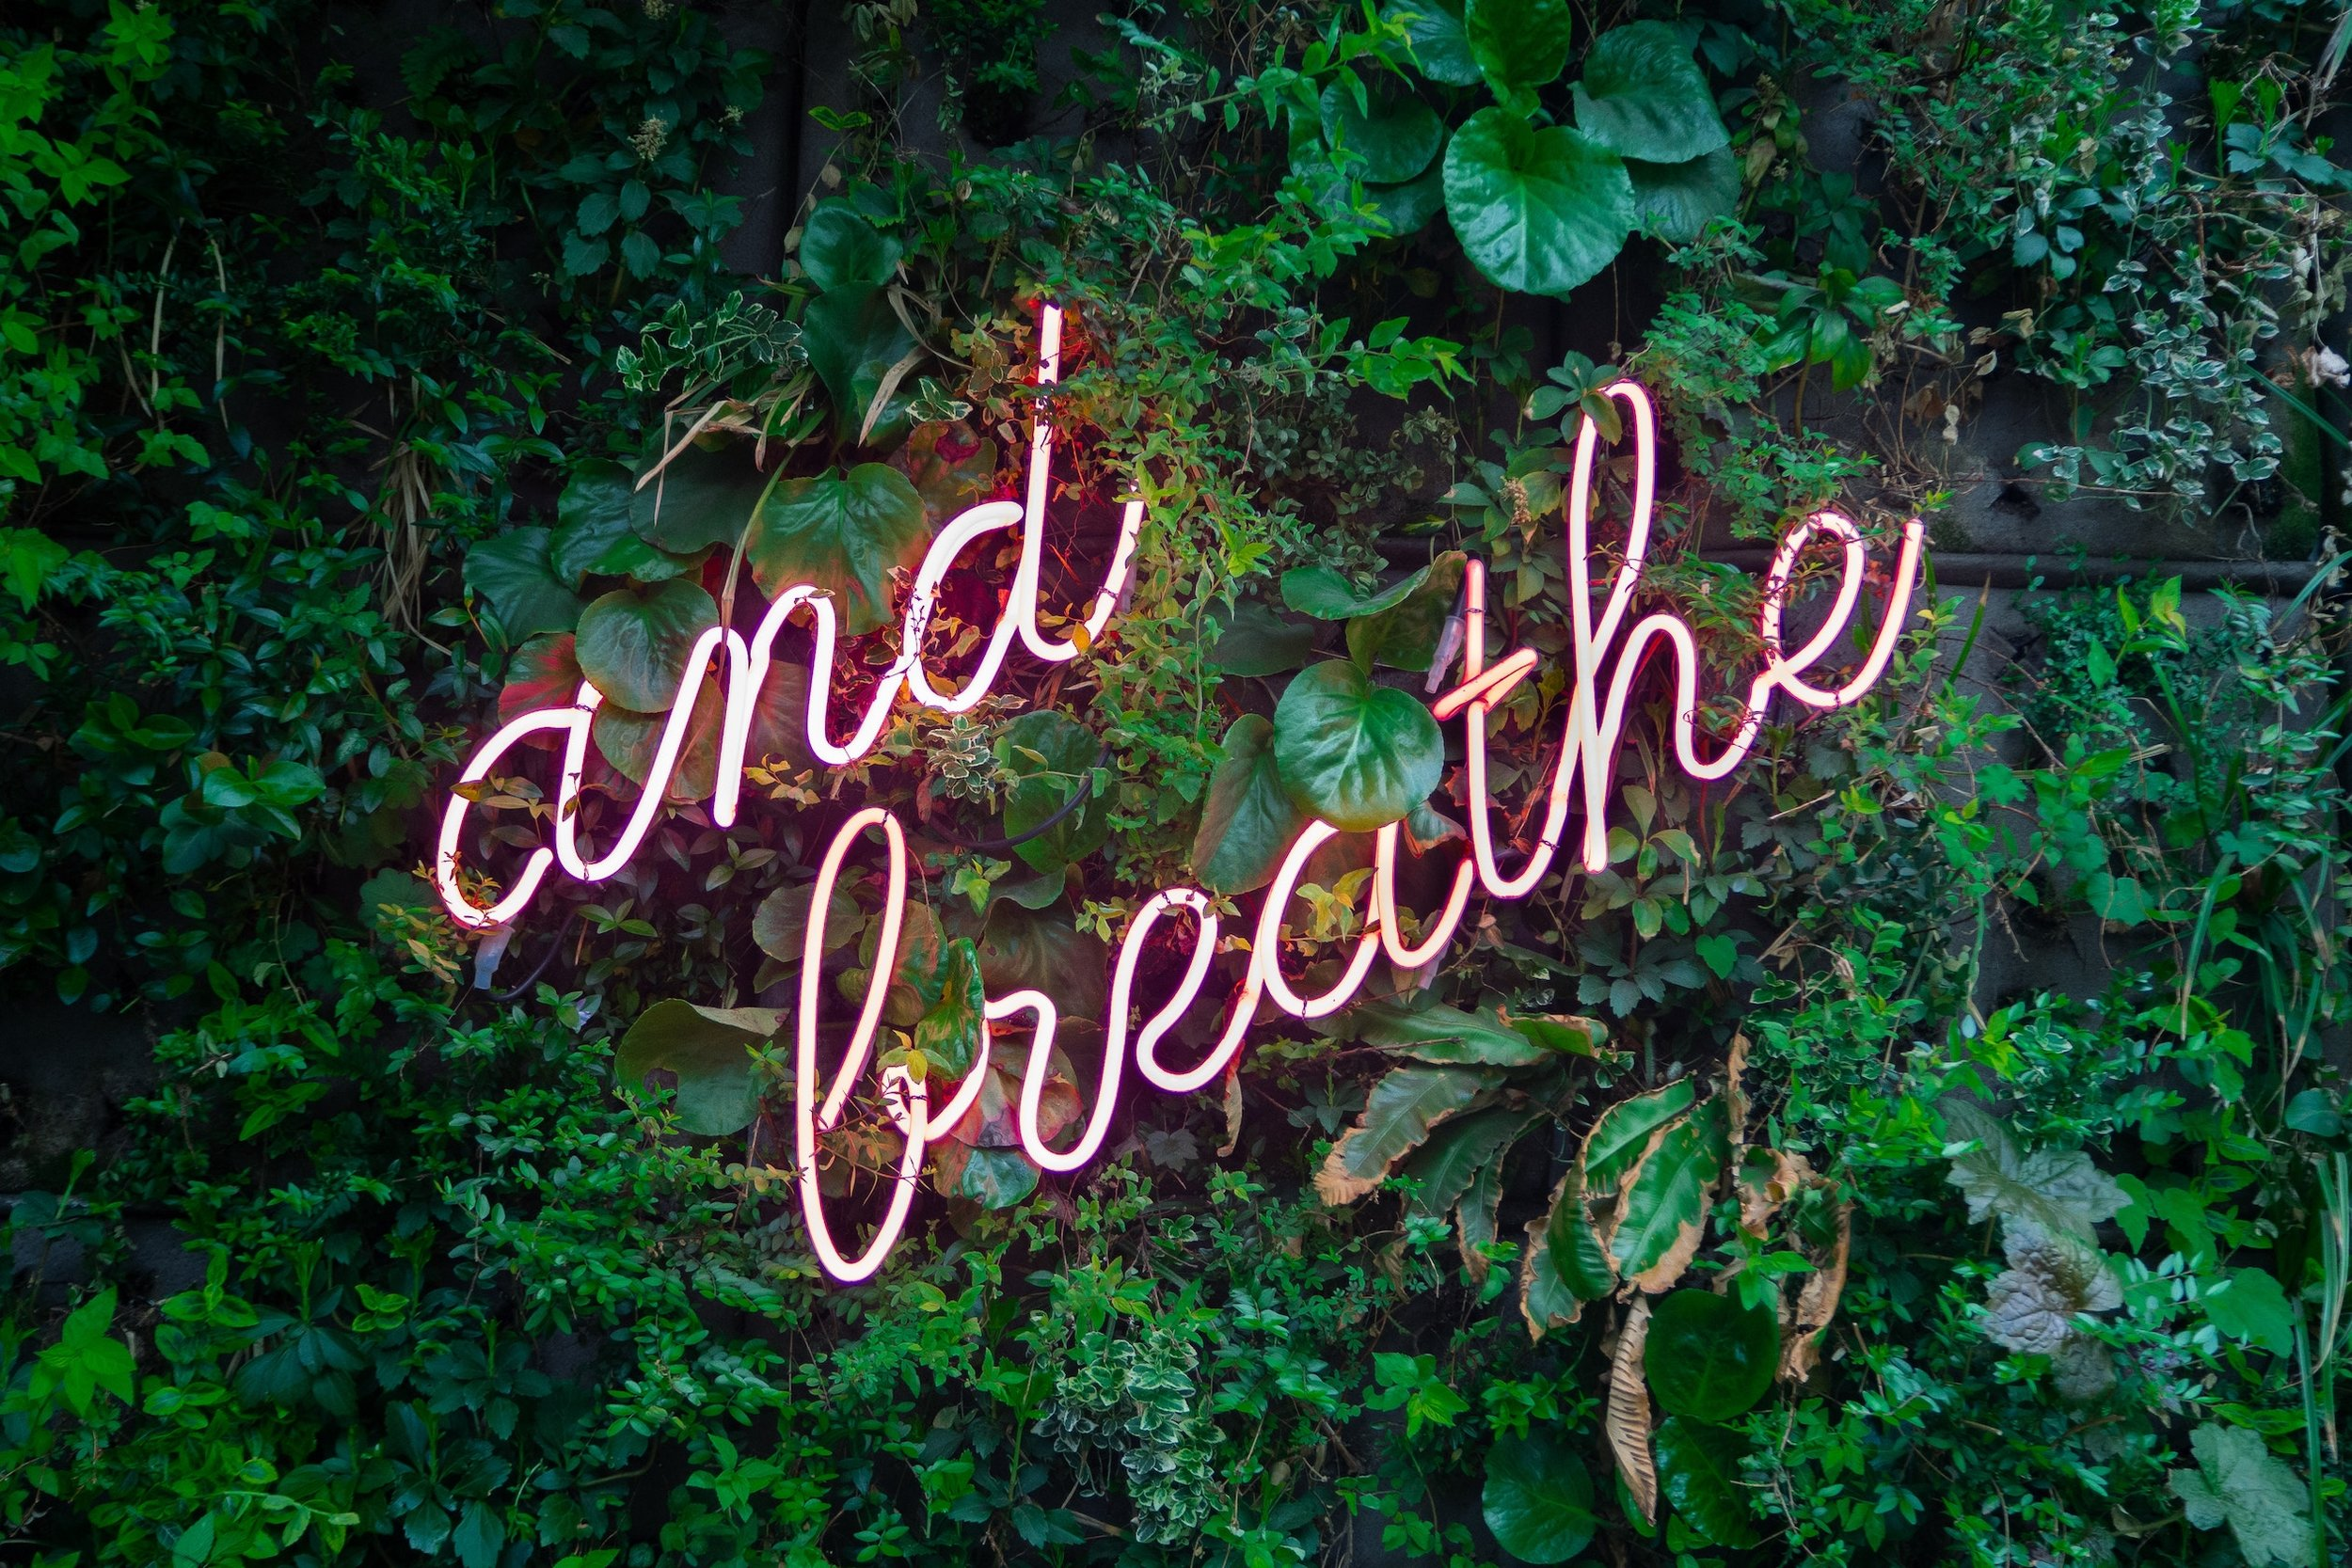 [Image Description: The words 'And Breathe' are presented in cursive neon lights against a background of trees and other plants.]